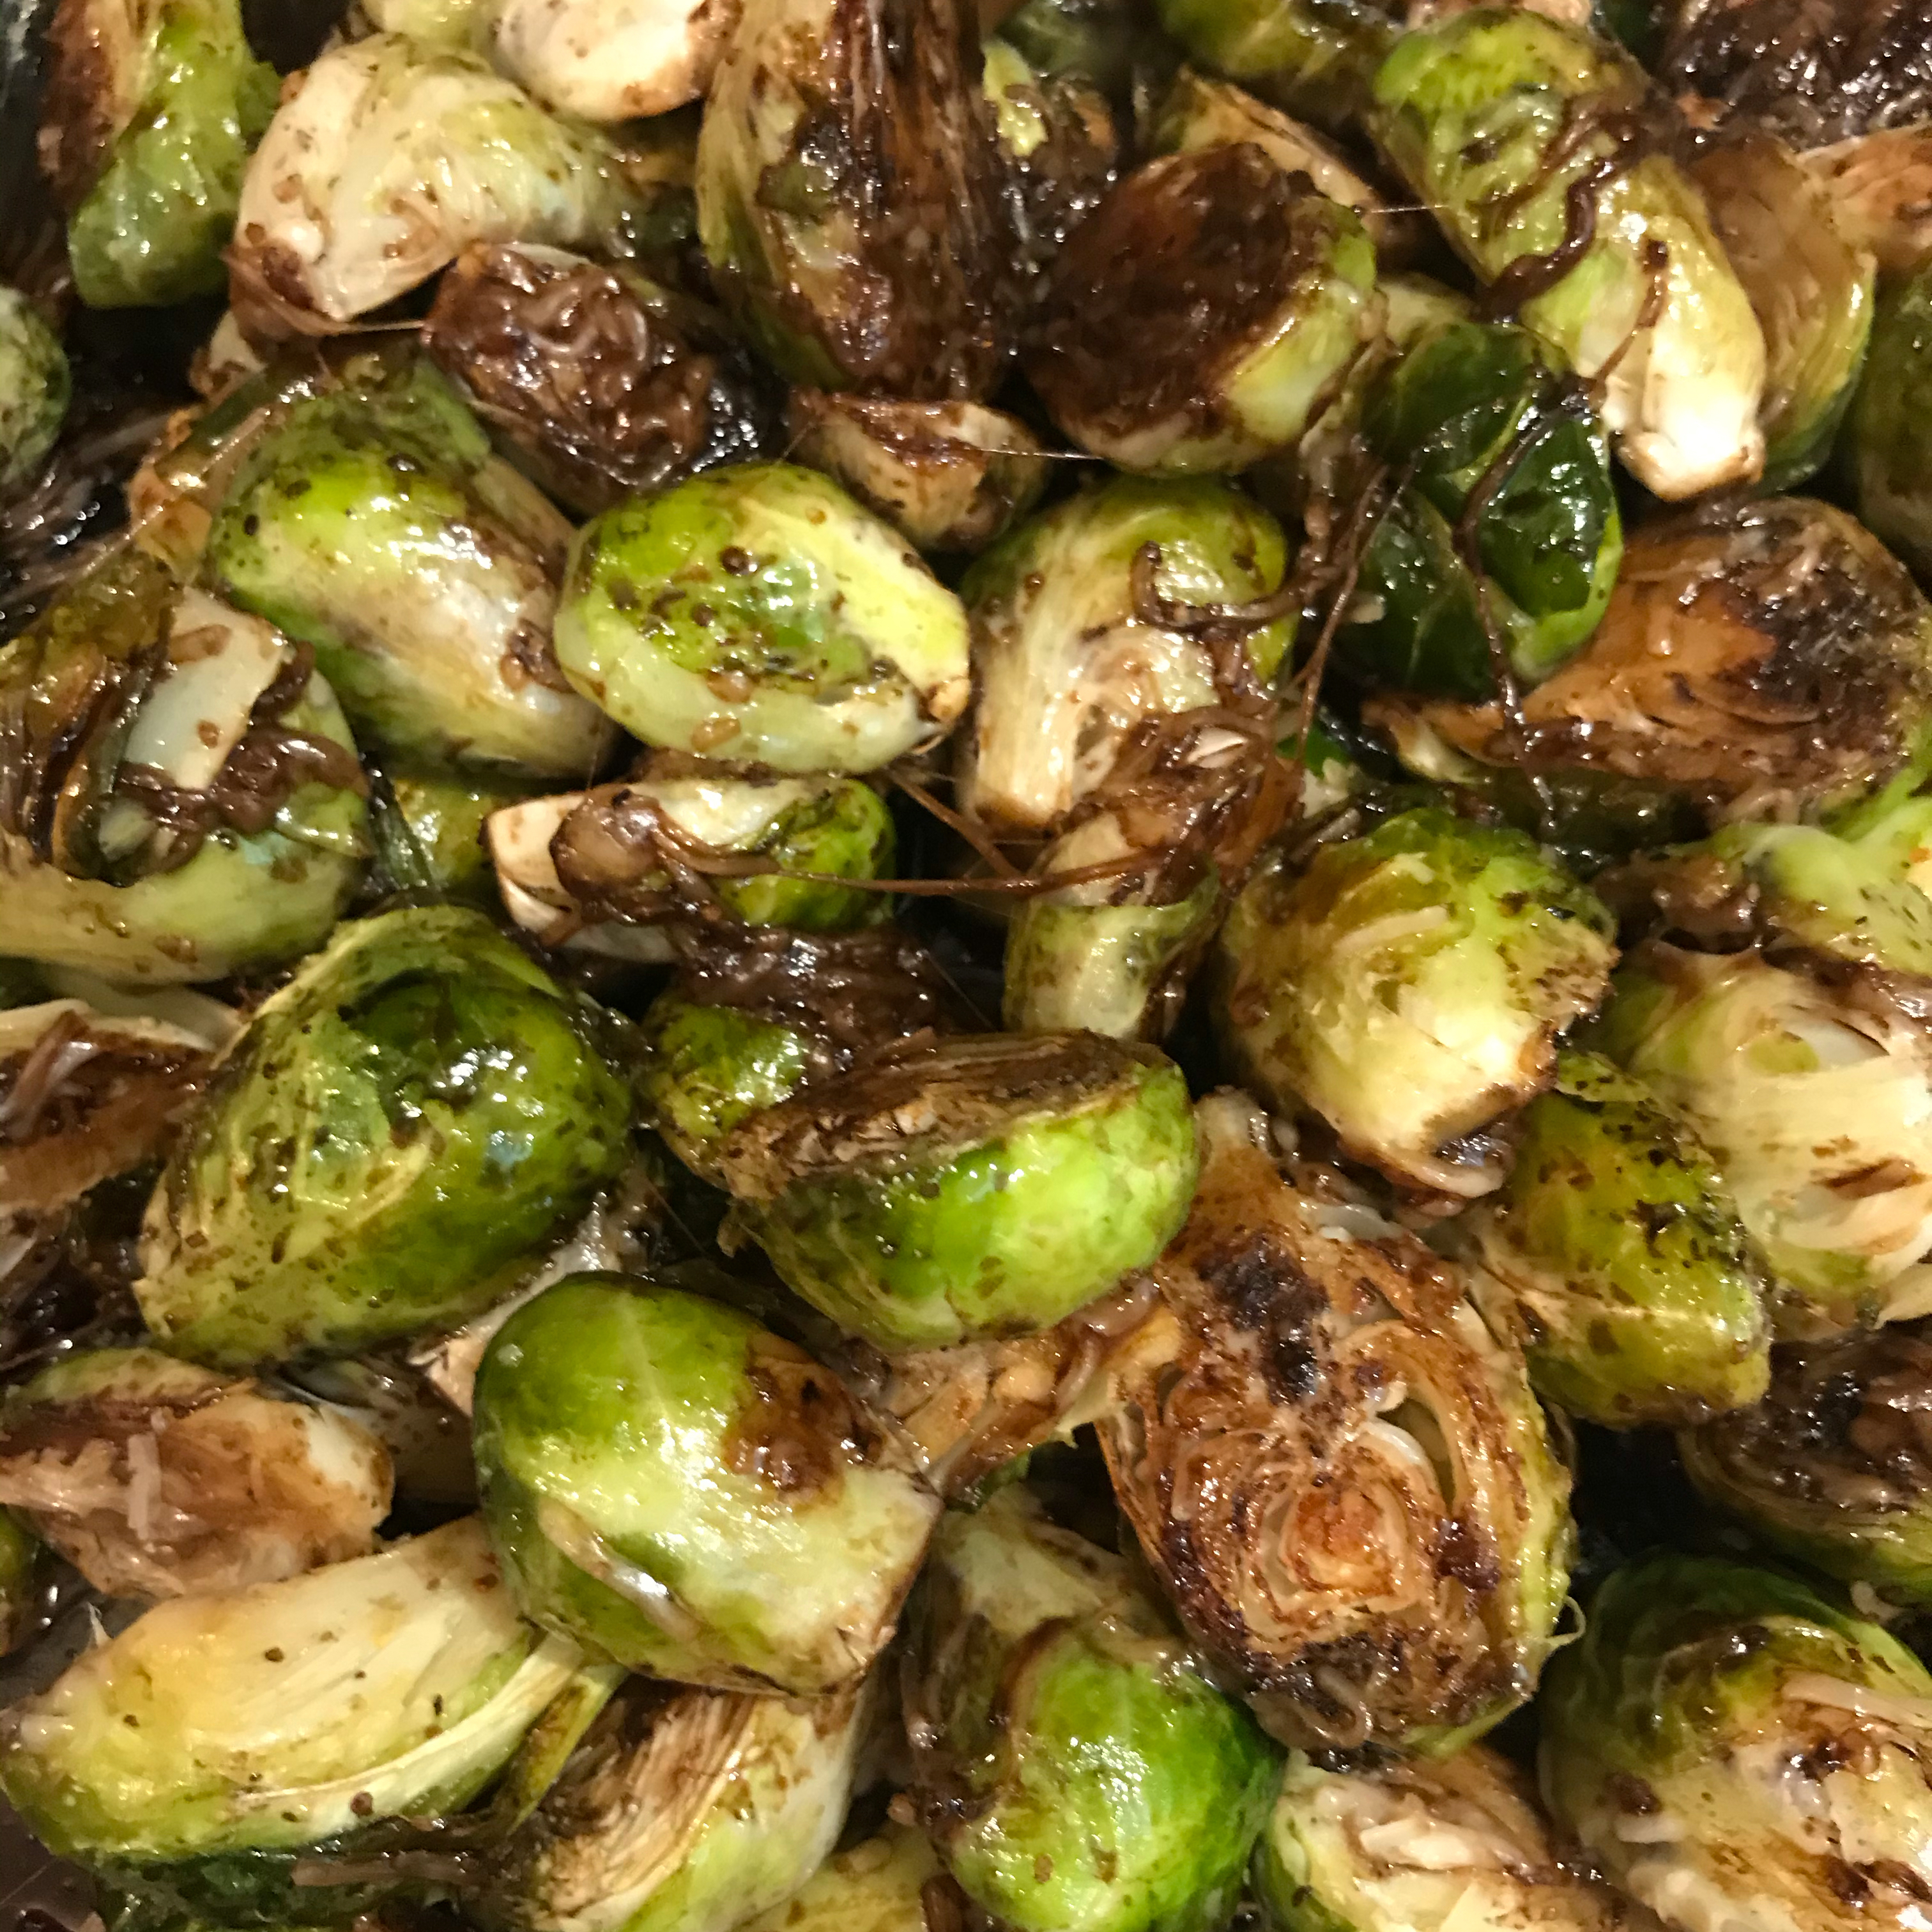 Roasted Brussels Sprouts with Parmesan Mary Kimberly Cornell Olson